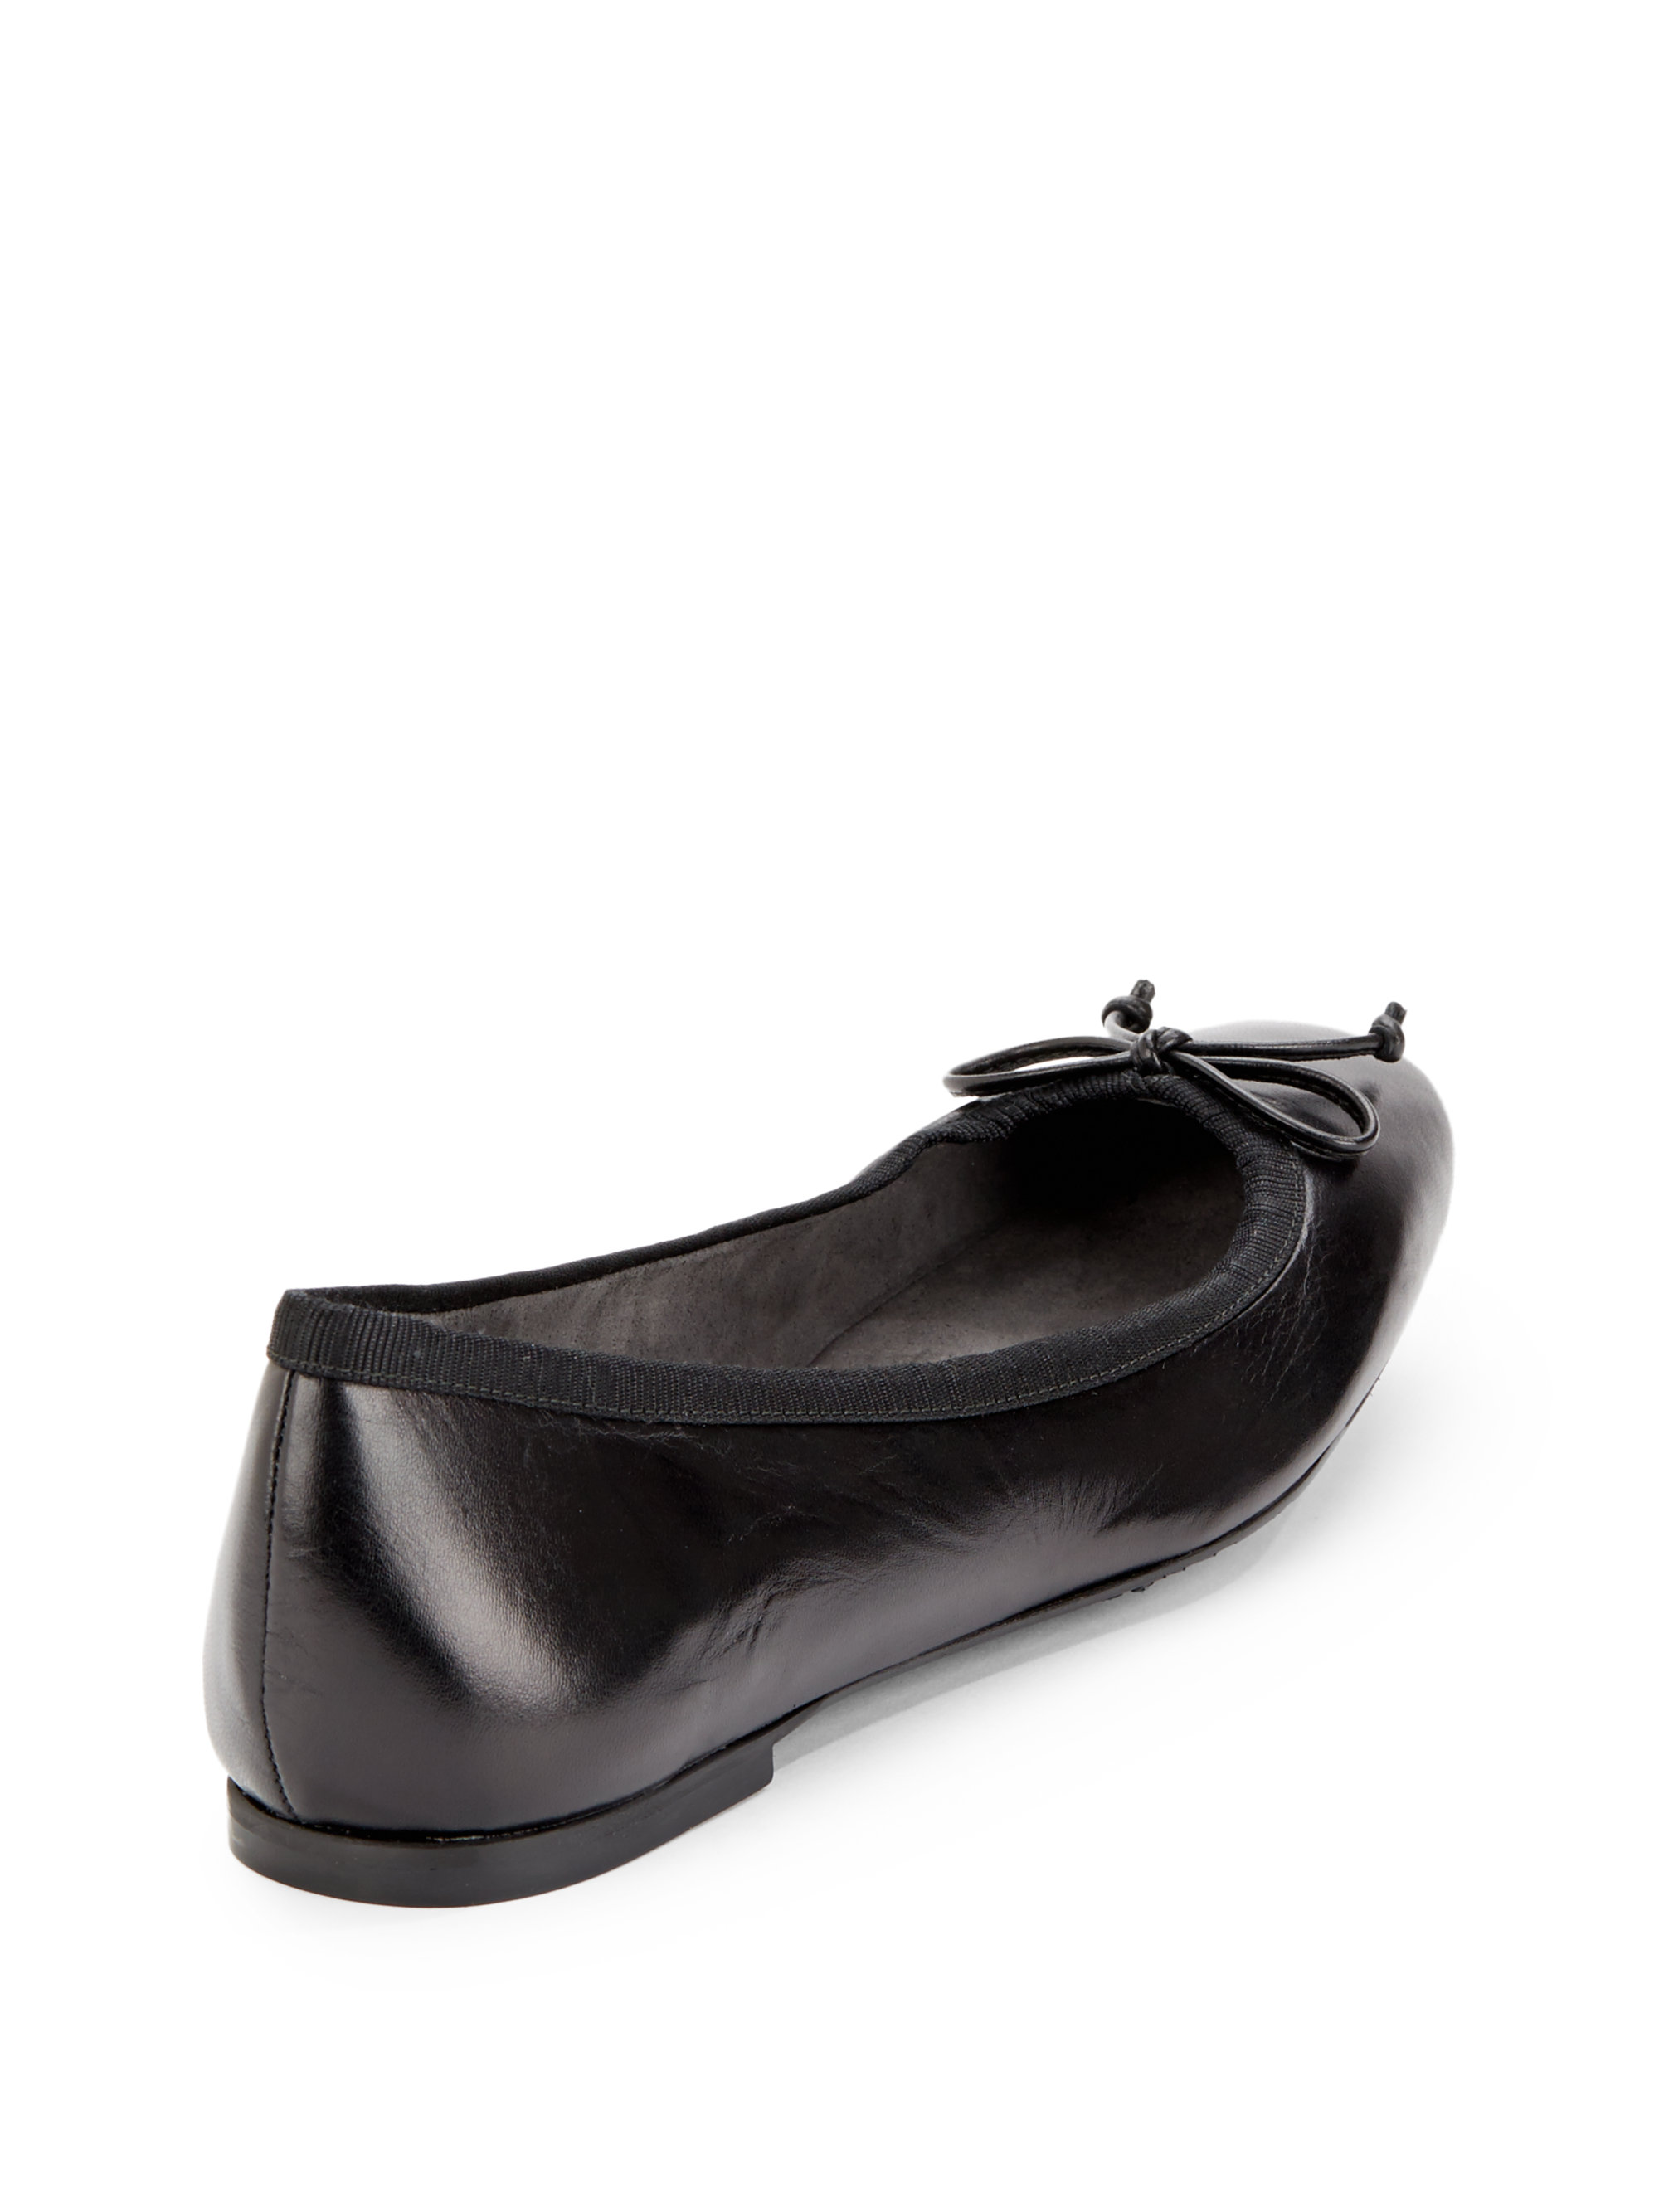 Stuart Weitzman Prism Round-Toe Flats free shipping extremely HjSVG